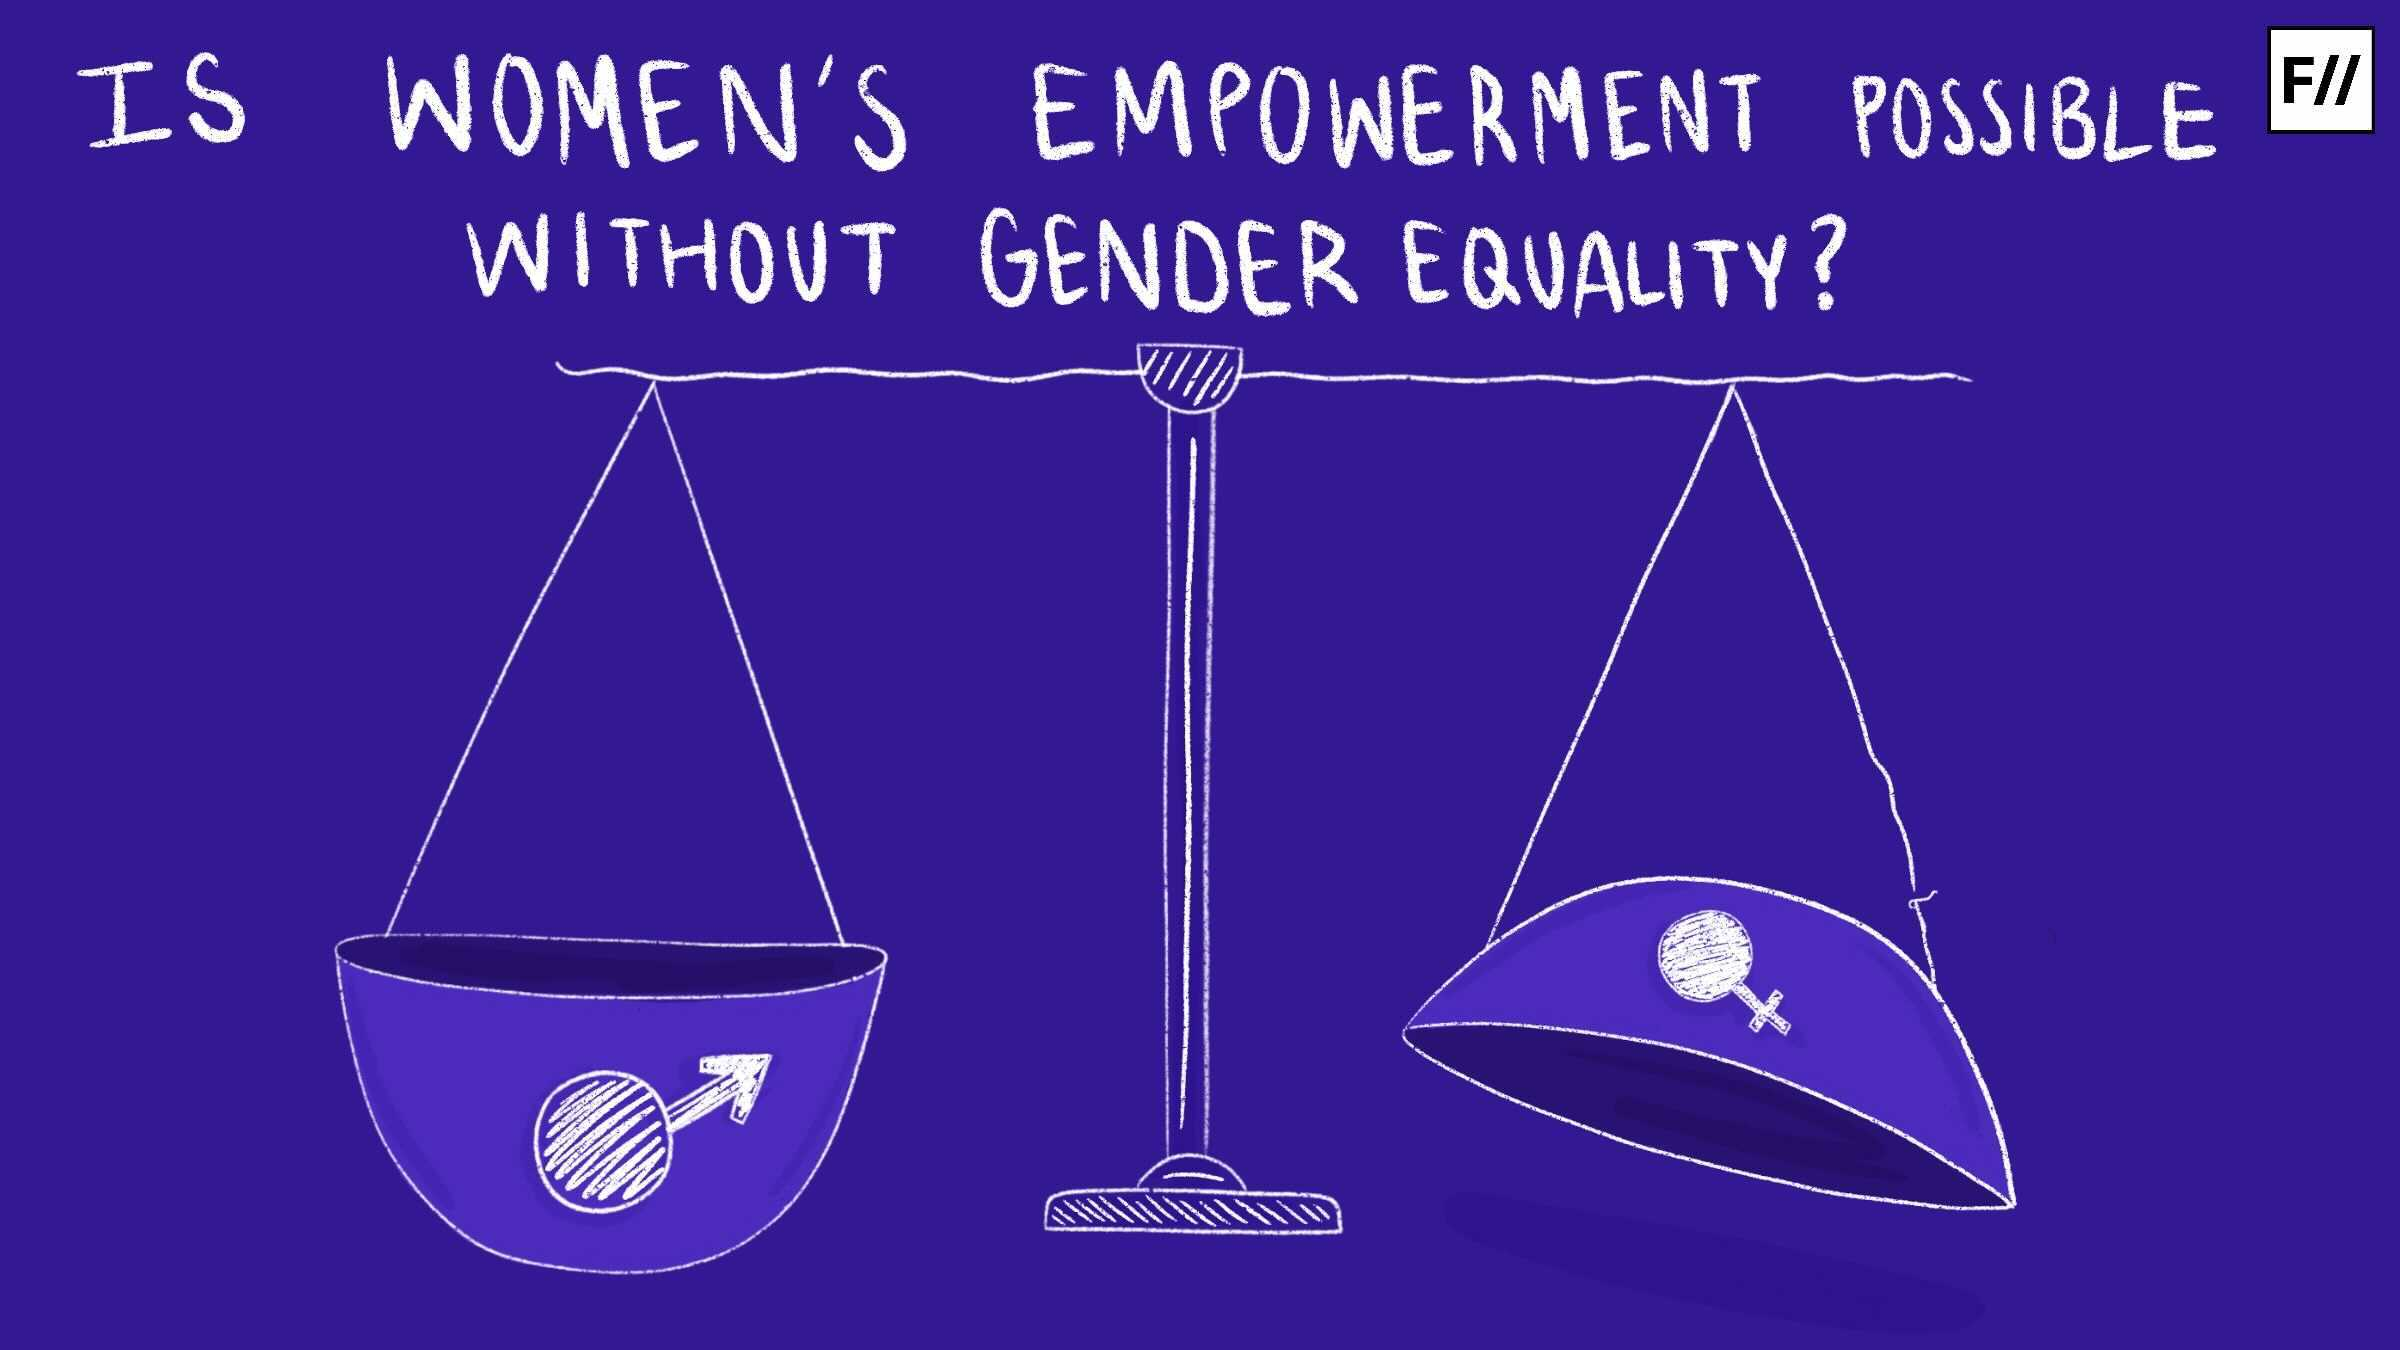 Is Women's Empowerment Possible Without Gender Equality?